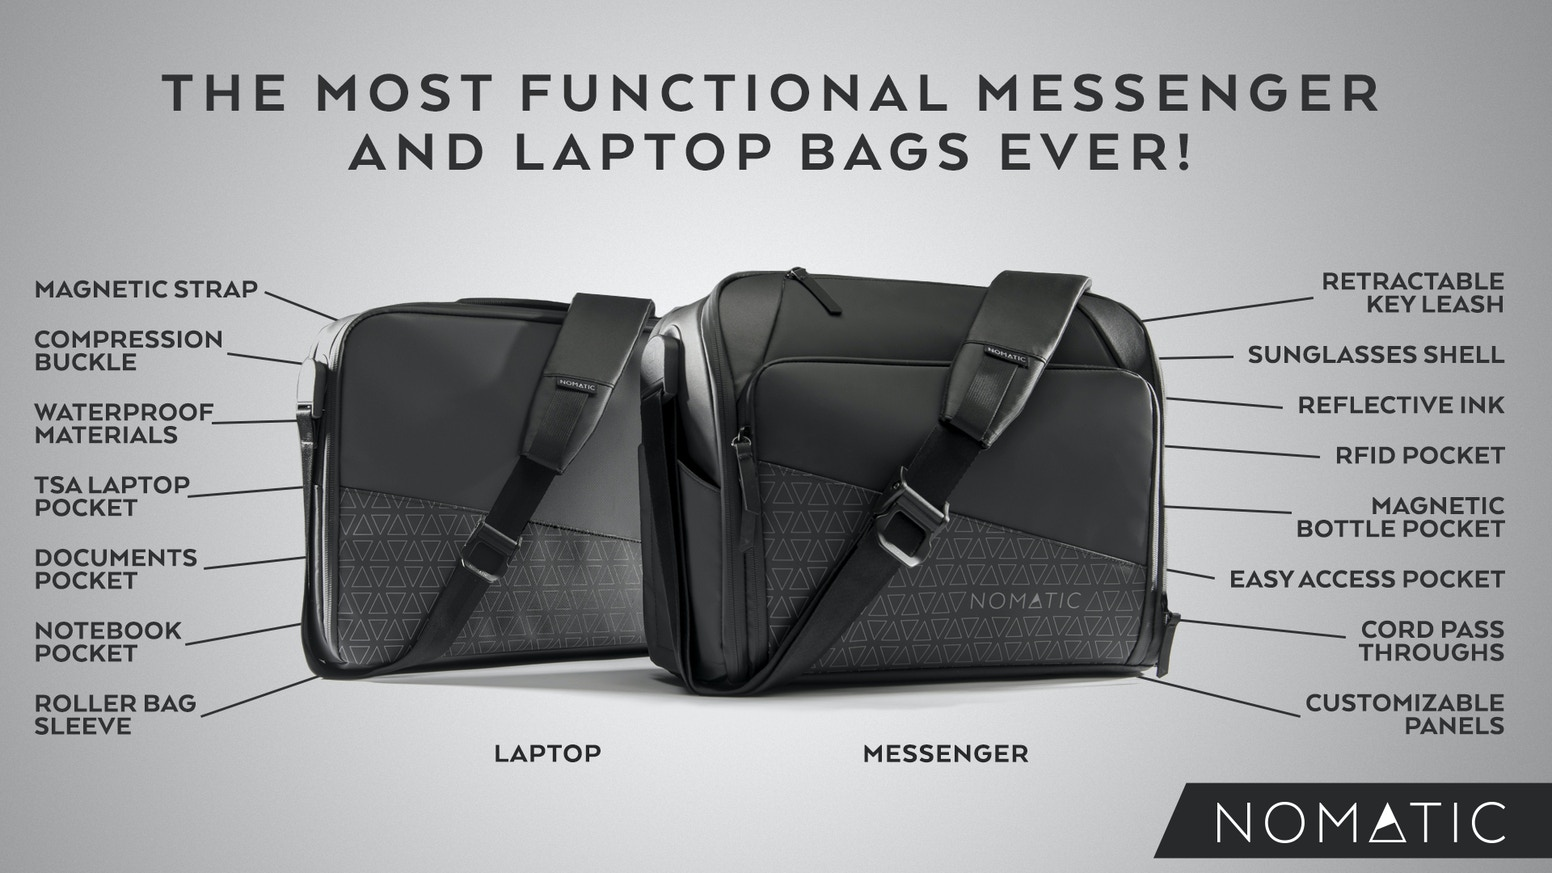 The Most Functional Messenger and Laptop Bags Ever!